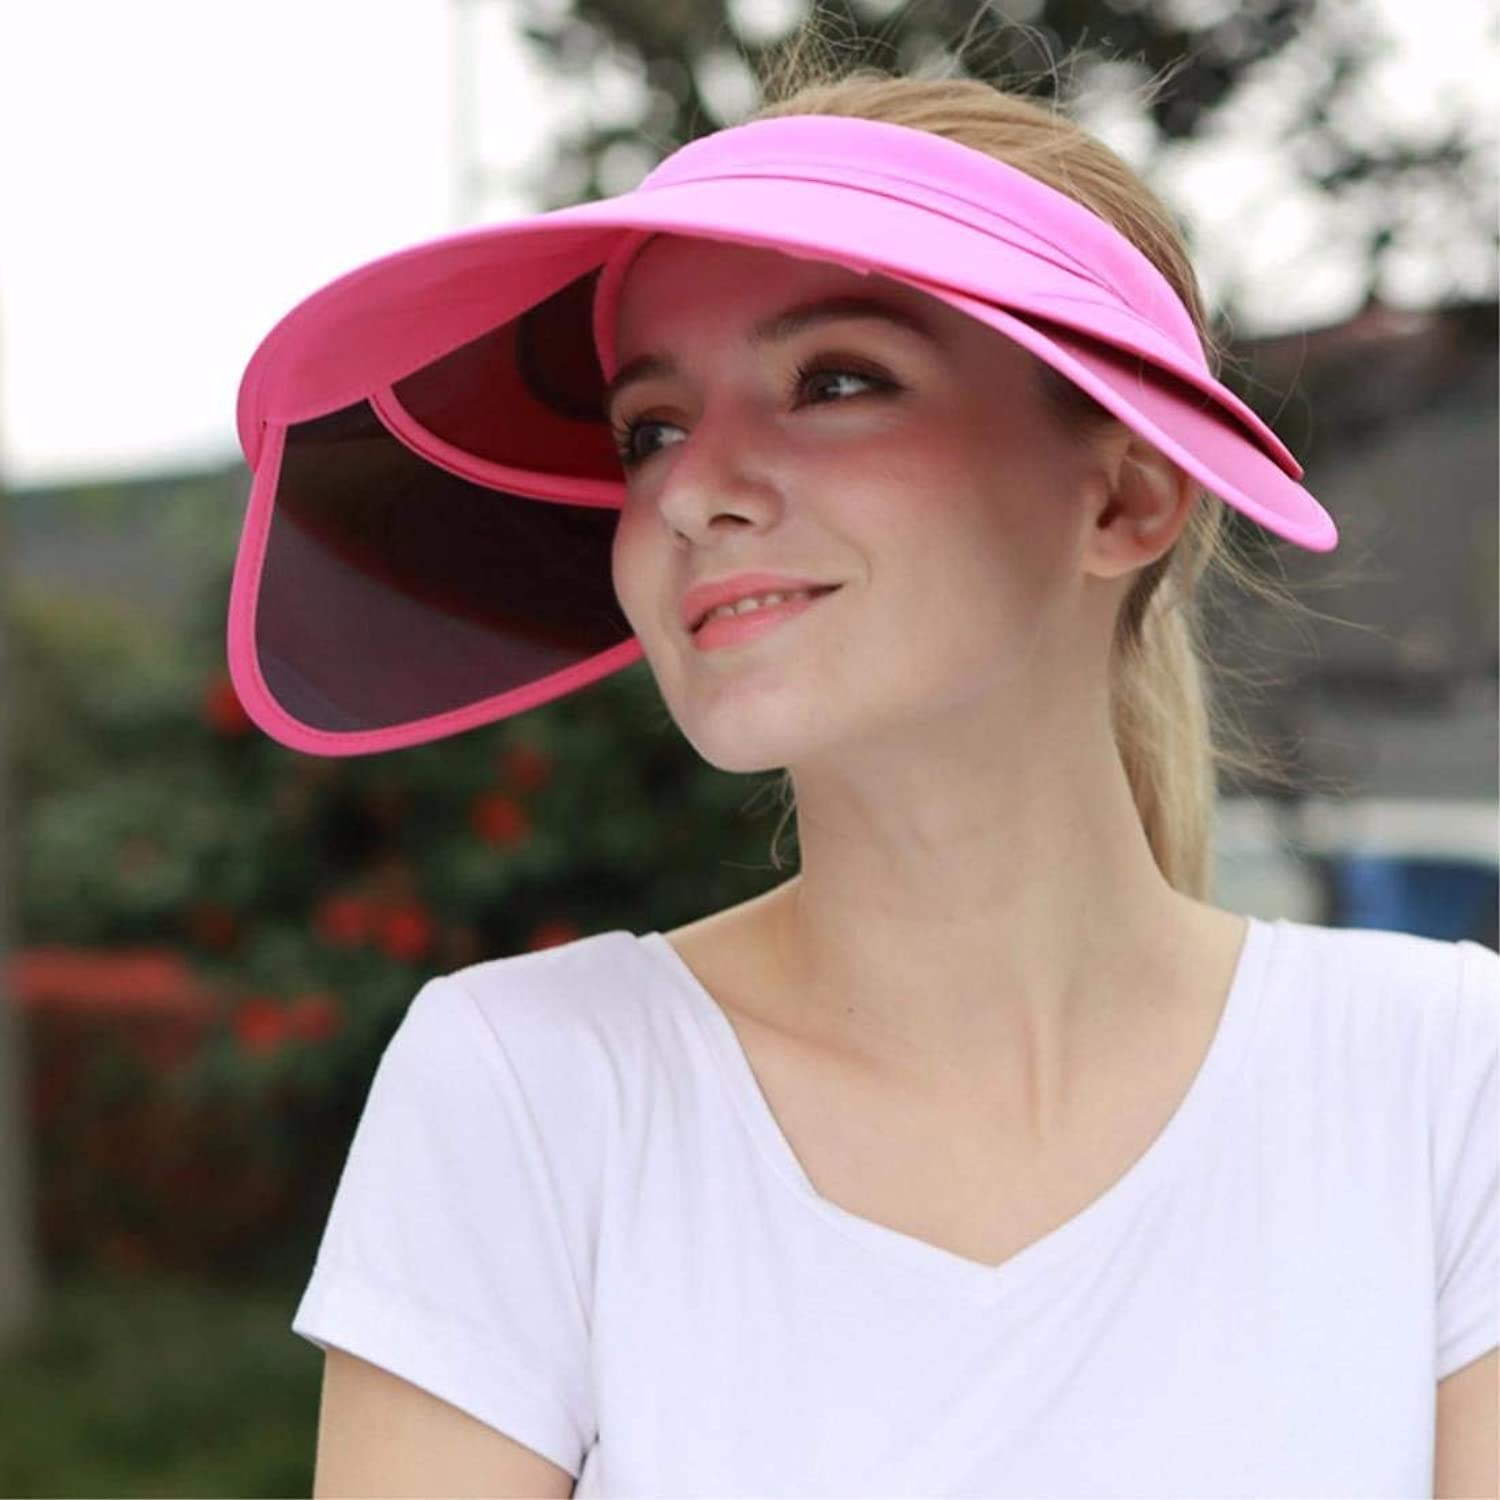 Beach Hat Woman Hat Summer Outdoor Sun Cap Empty Top Hat Beach Cap Bike Cap Pink A Summer Sun Hat